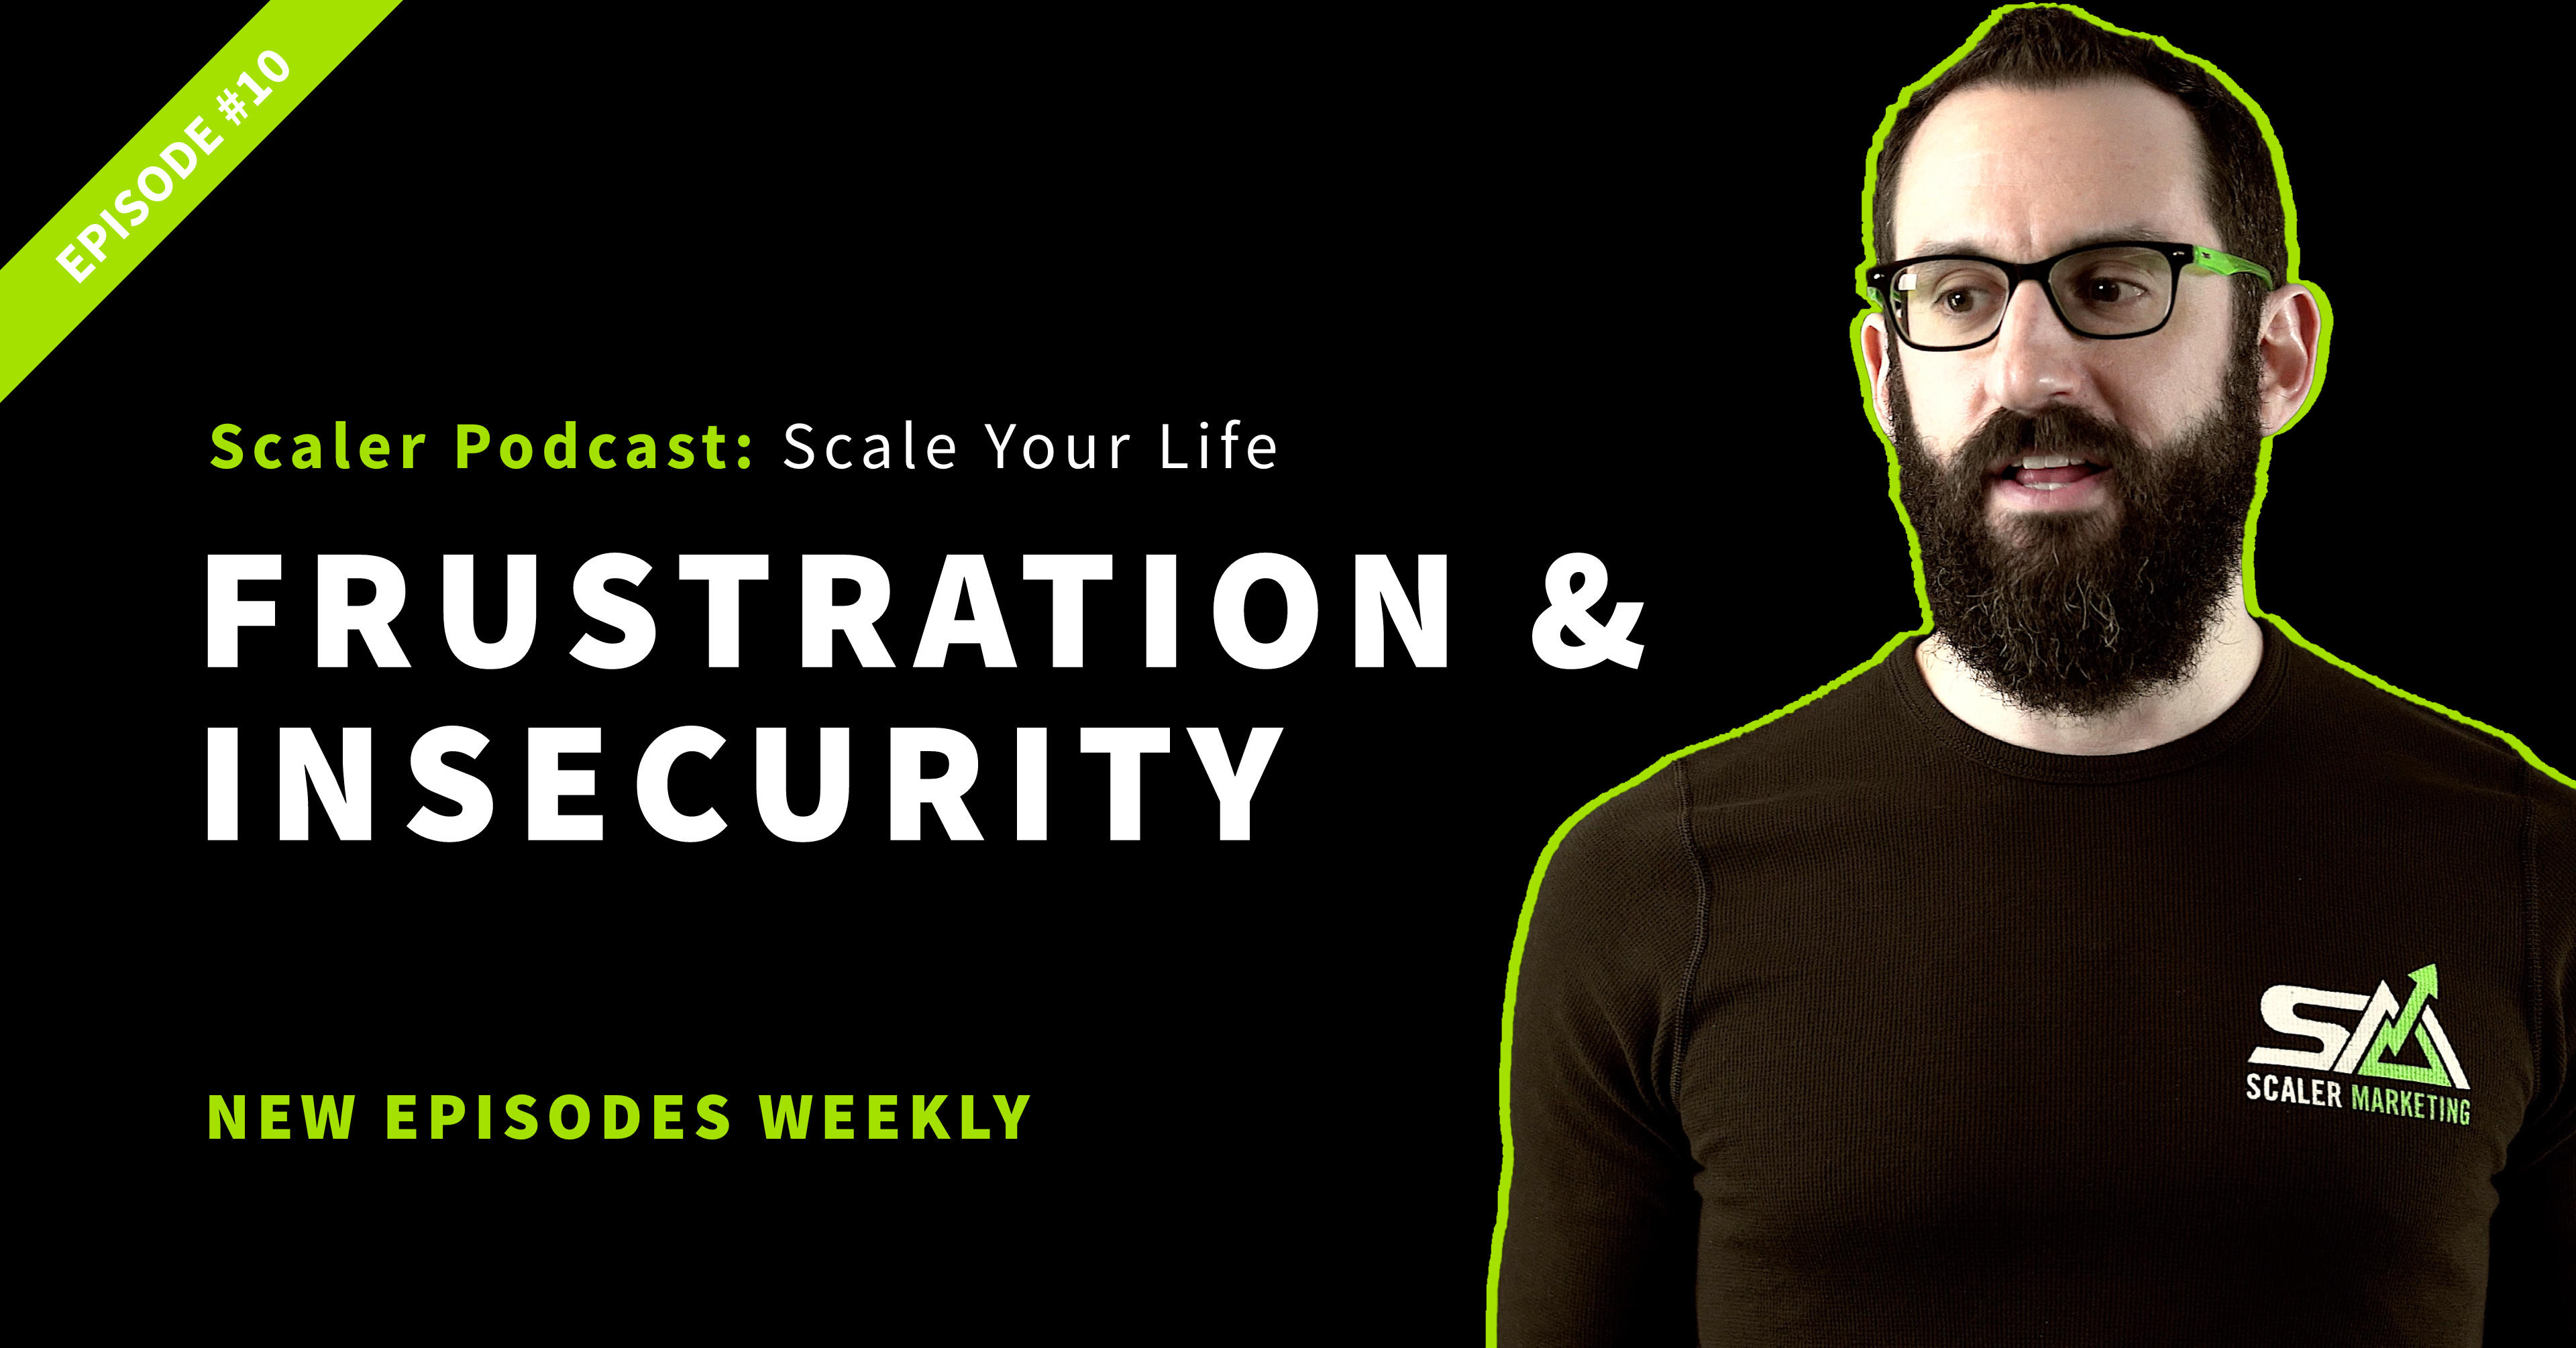 Episode 10 - Frustration & Insecurity